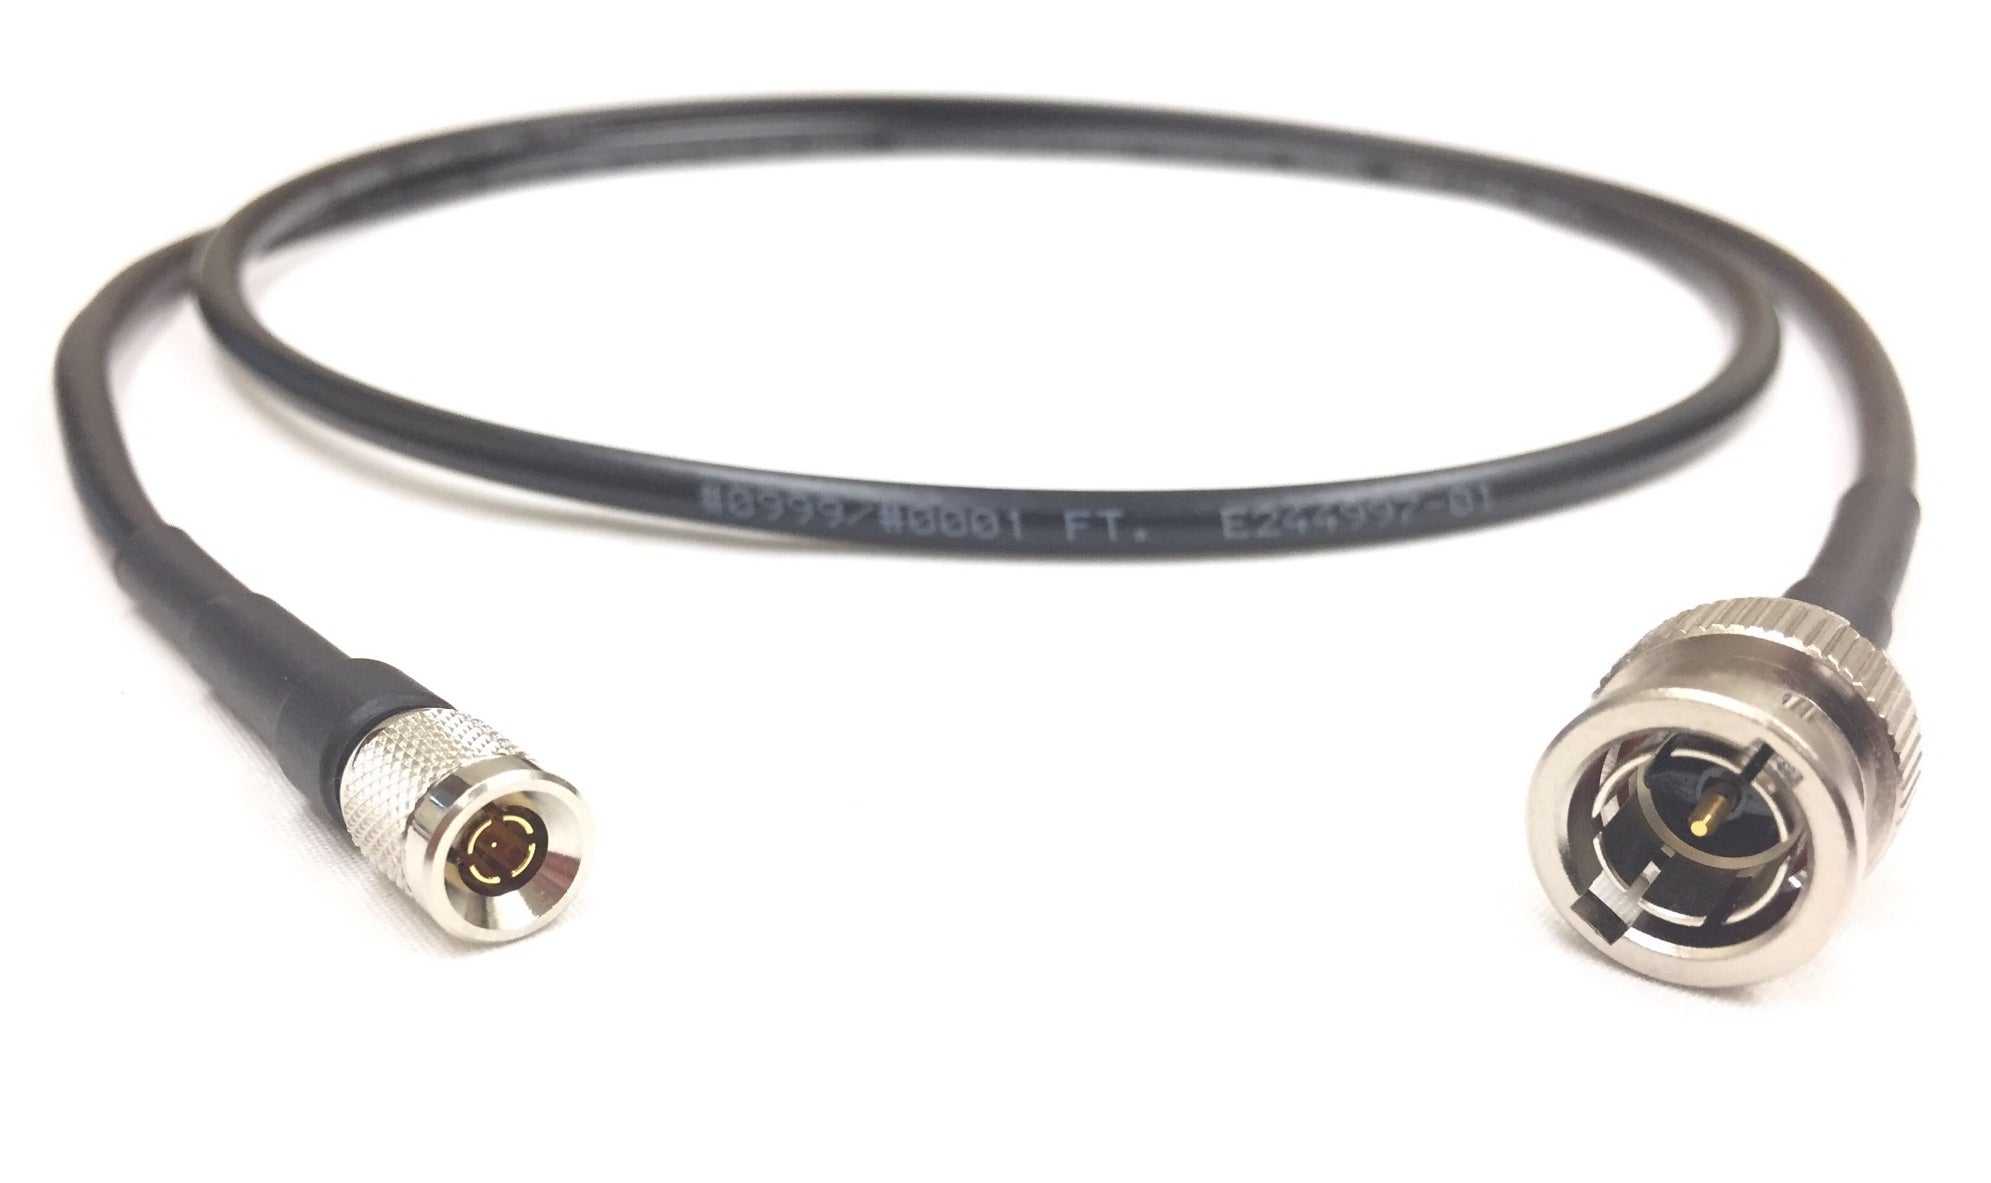 75 ohm US MADE  Dual   DS3  735A   BNC  male to  BNC  male Coax cable  35 FT